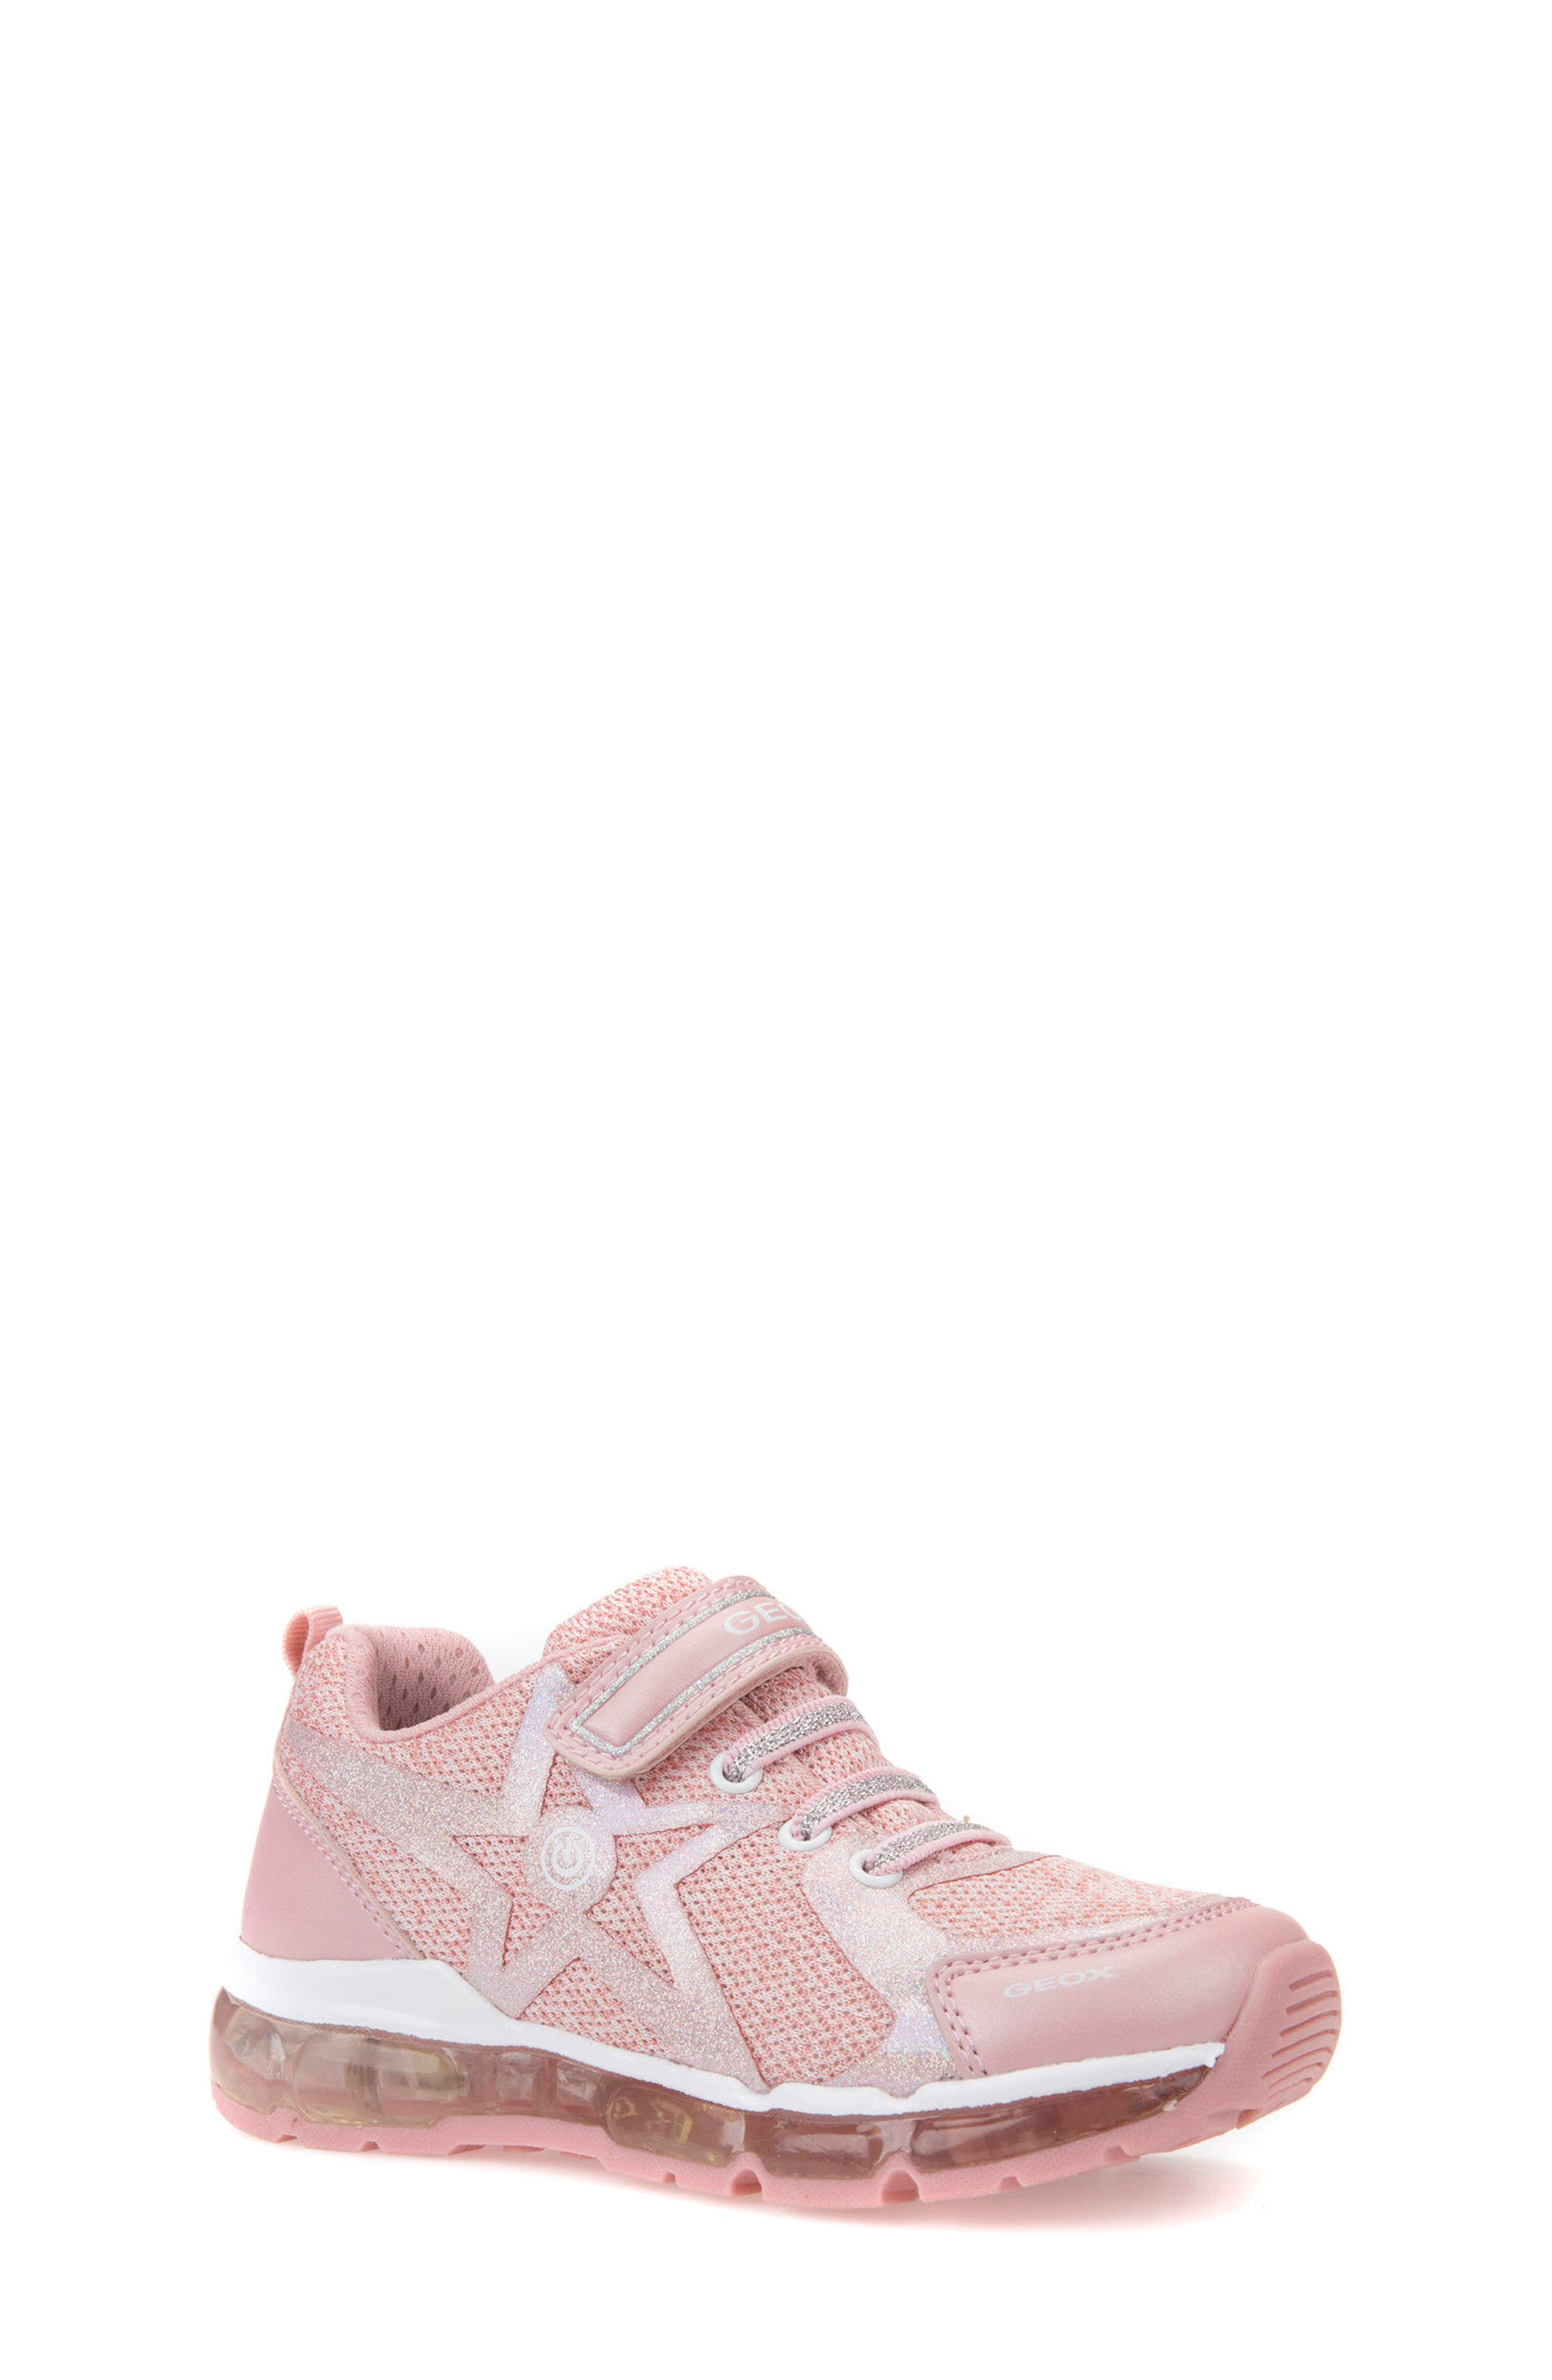 Android Light-Up Sneaker,                             Main thumbnail 1, color,                             Rose/ White